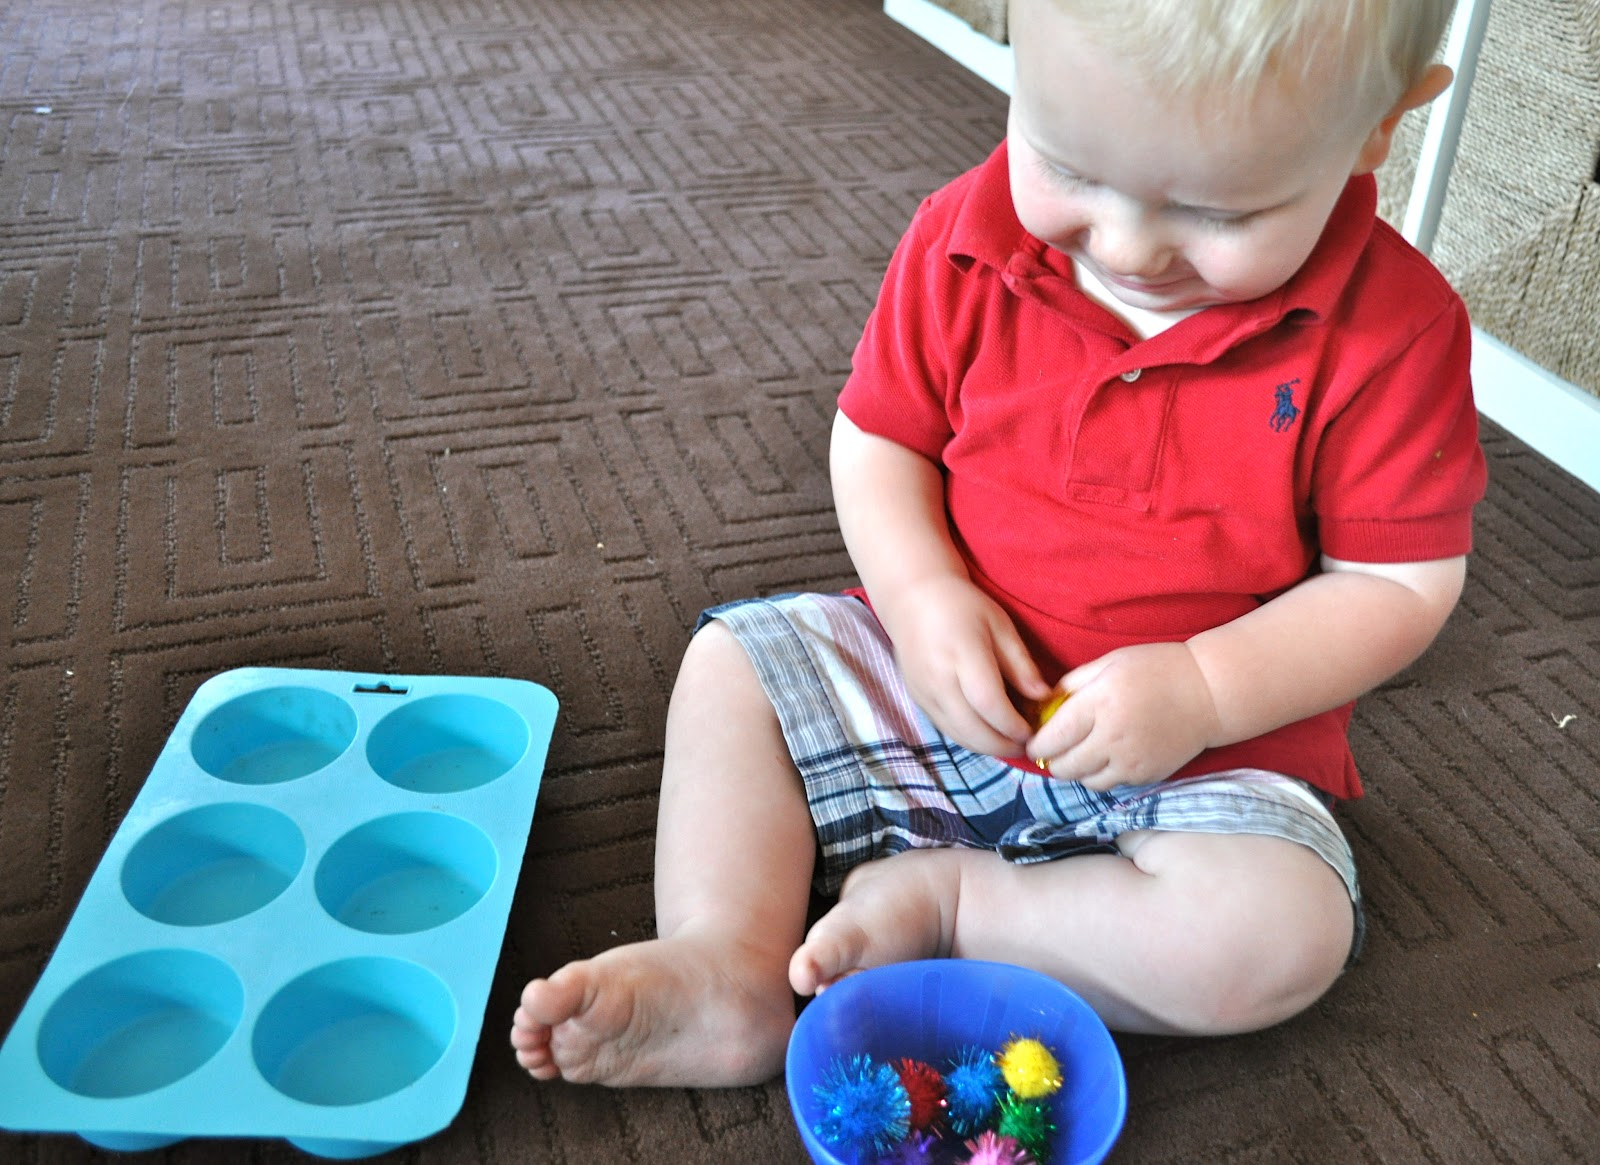 Worksheets For 1 Year Olds : The activity mom one year old learning activities